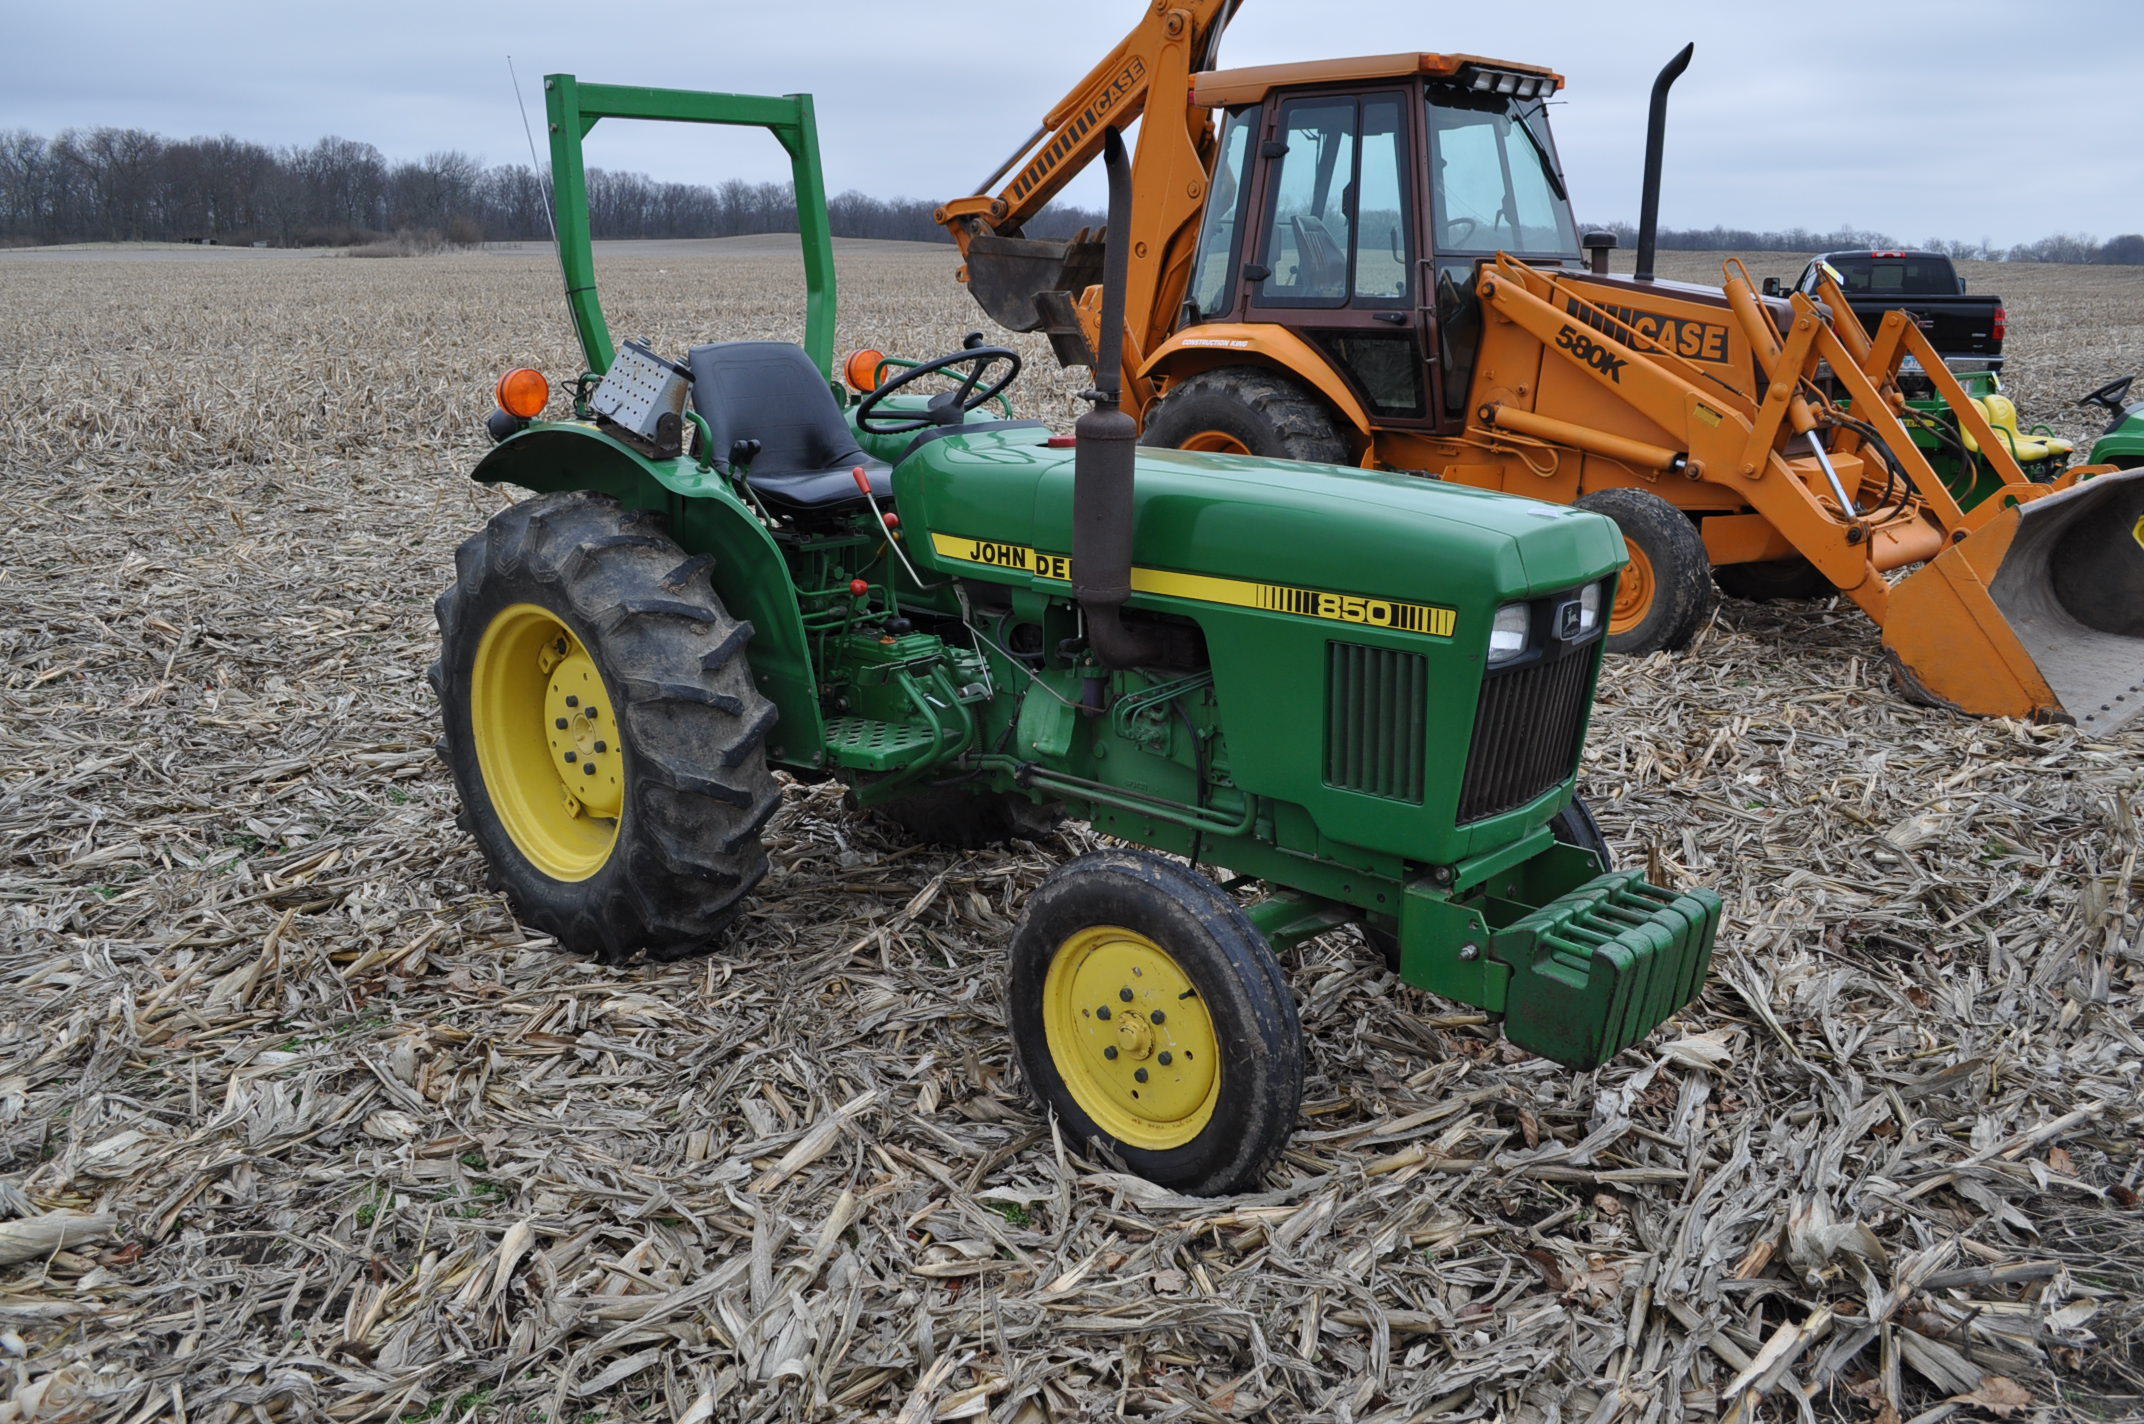 John Deere 850 utility tractor, diesel, 12.4-24 rear, 5.00-16 front, 2 hyd remotes, 3 pt, 540 pto, - Image 4 of 13